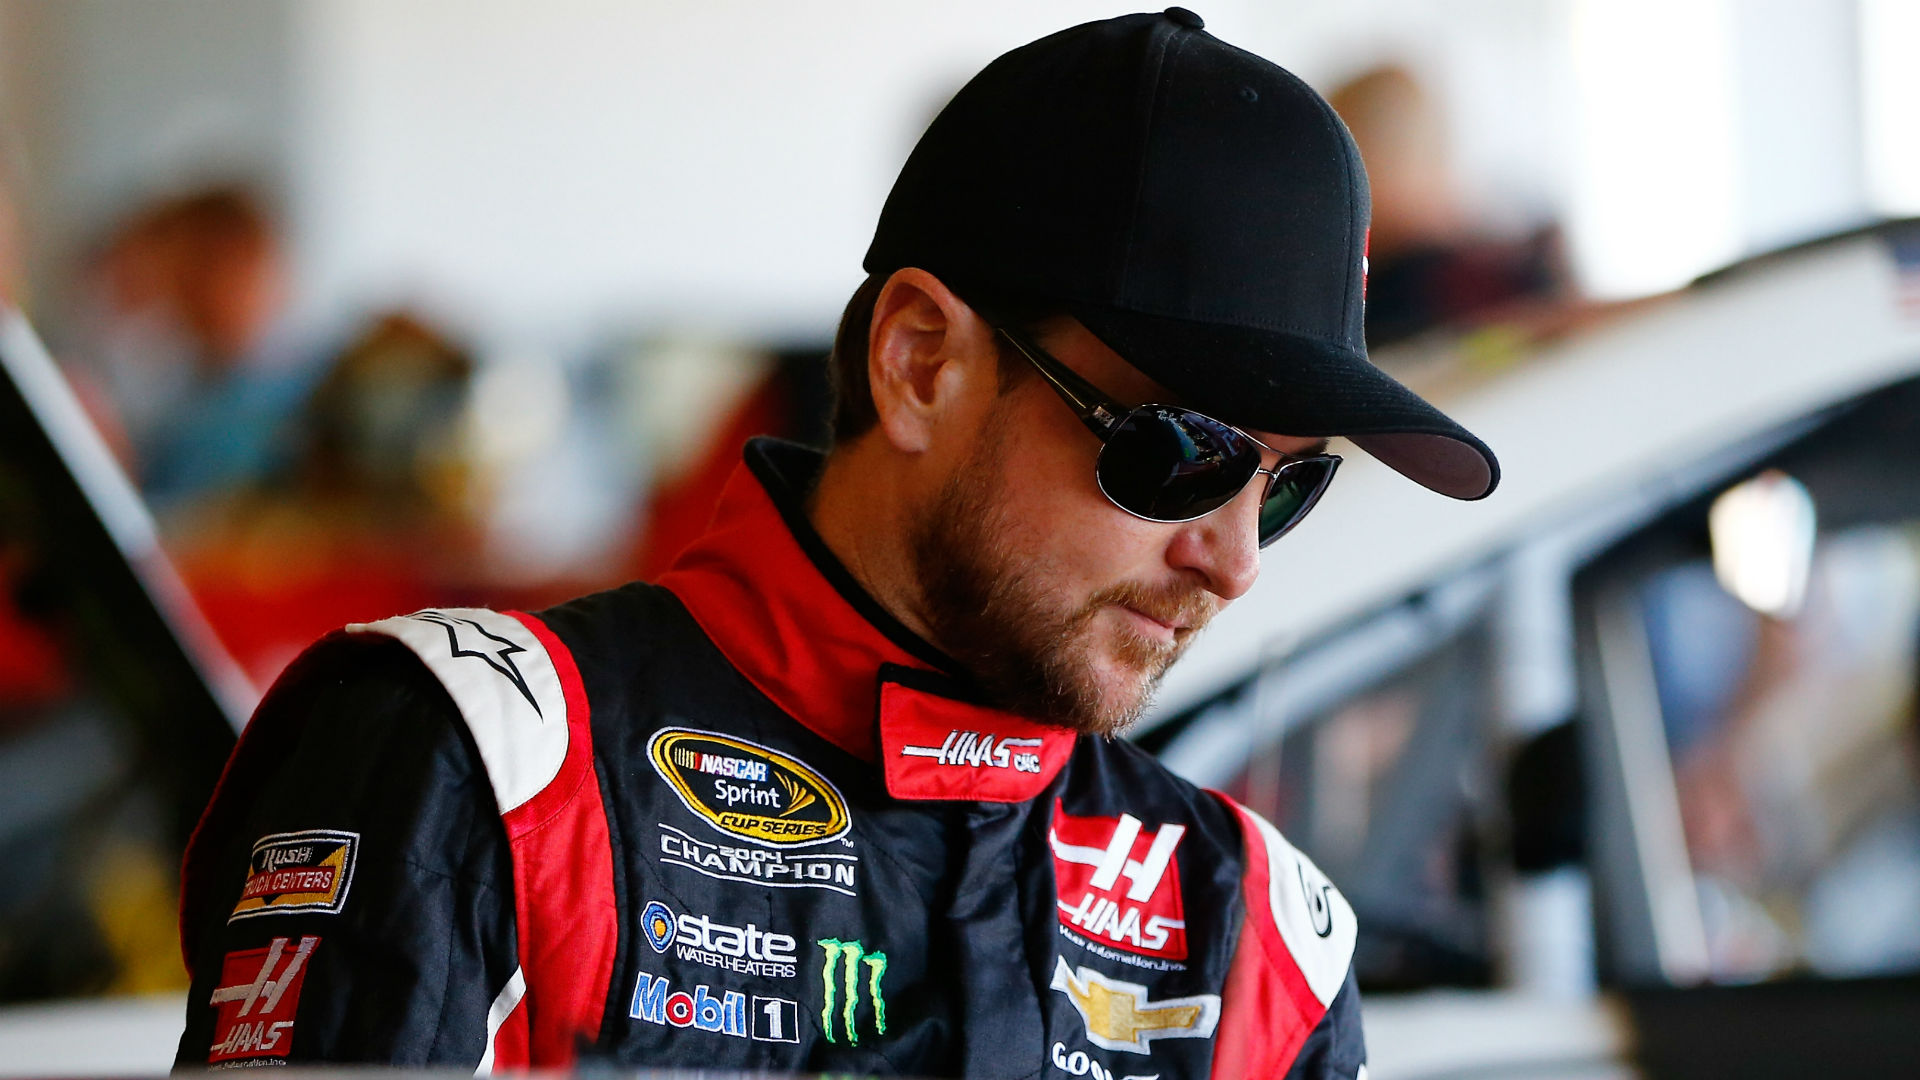 NASCAR at New Hampshire: Kurt Busch's playoff hopes in trouble after big wreck